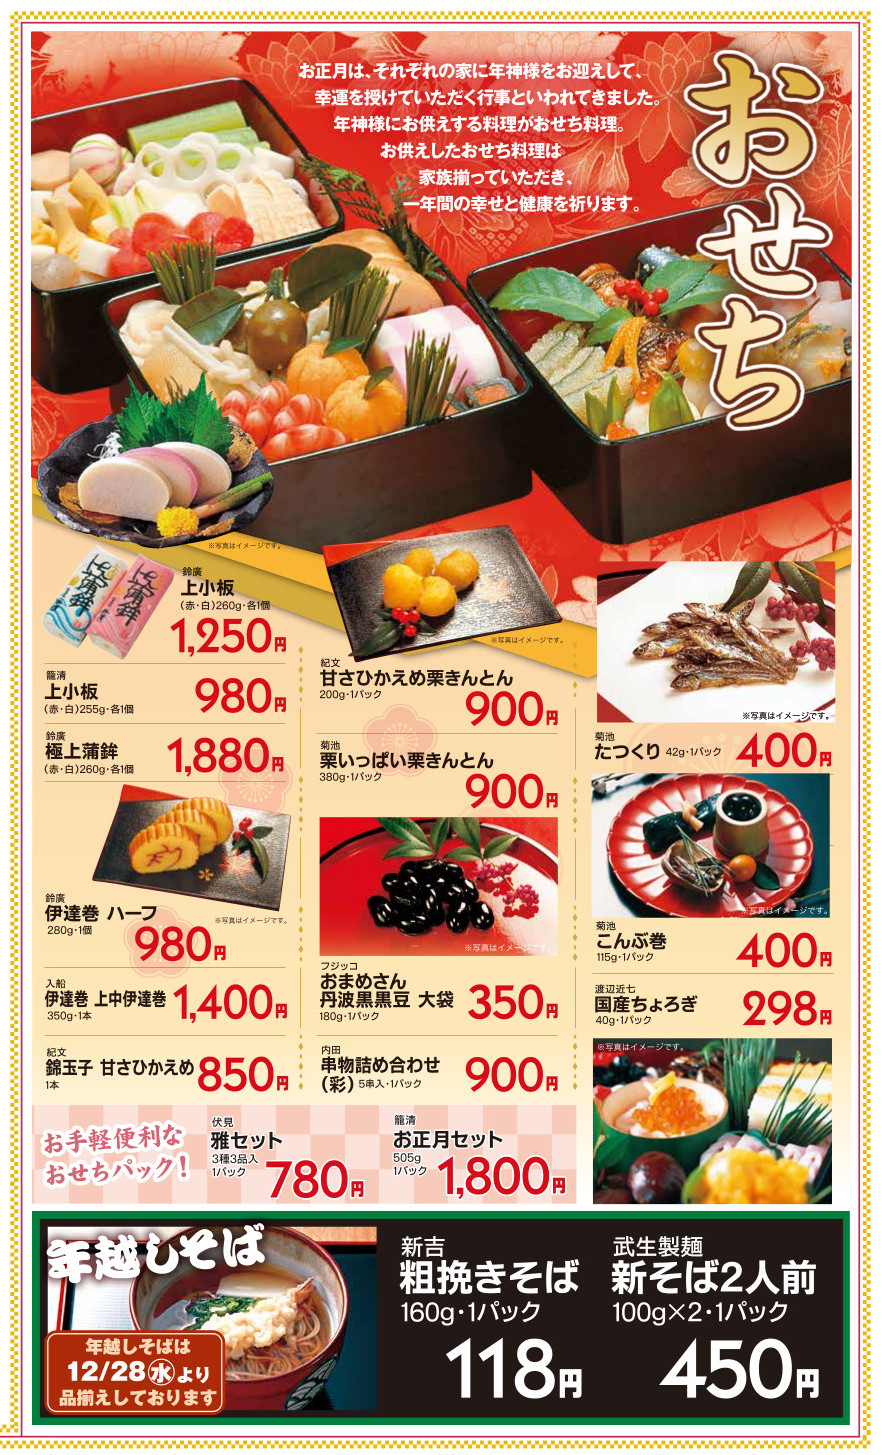 Flyer20161227_recomtitle3_2